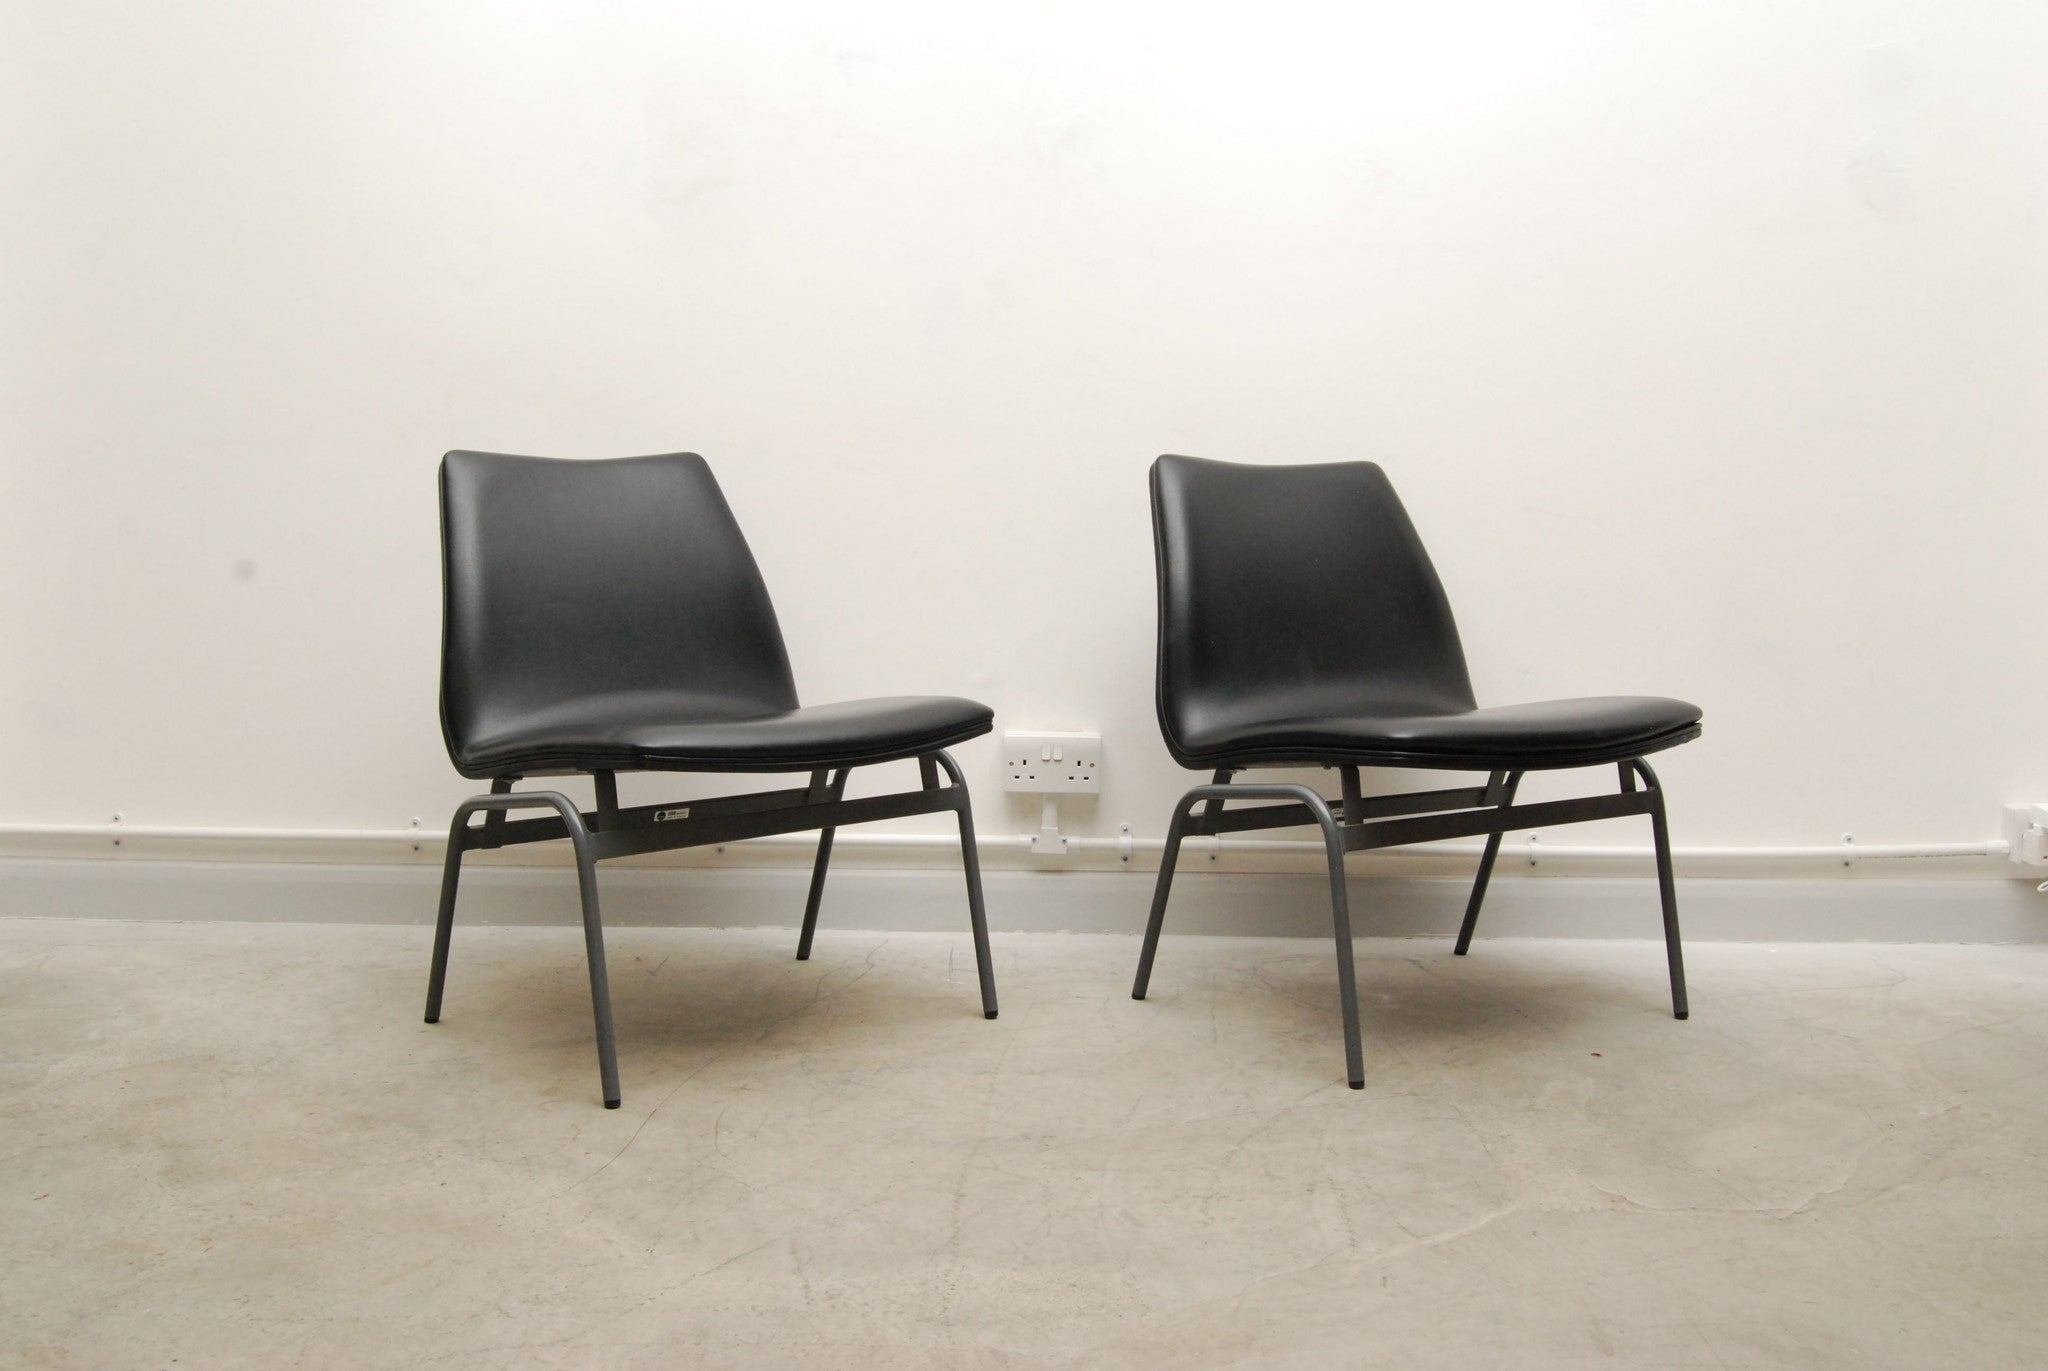 New price: Pair of occasional chairs by DUBA